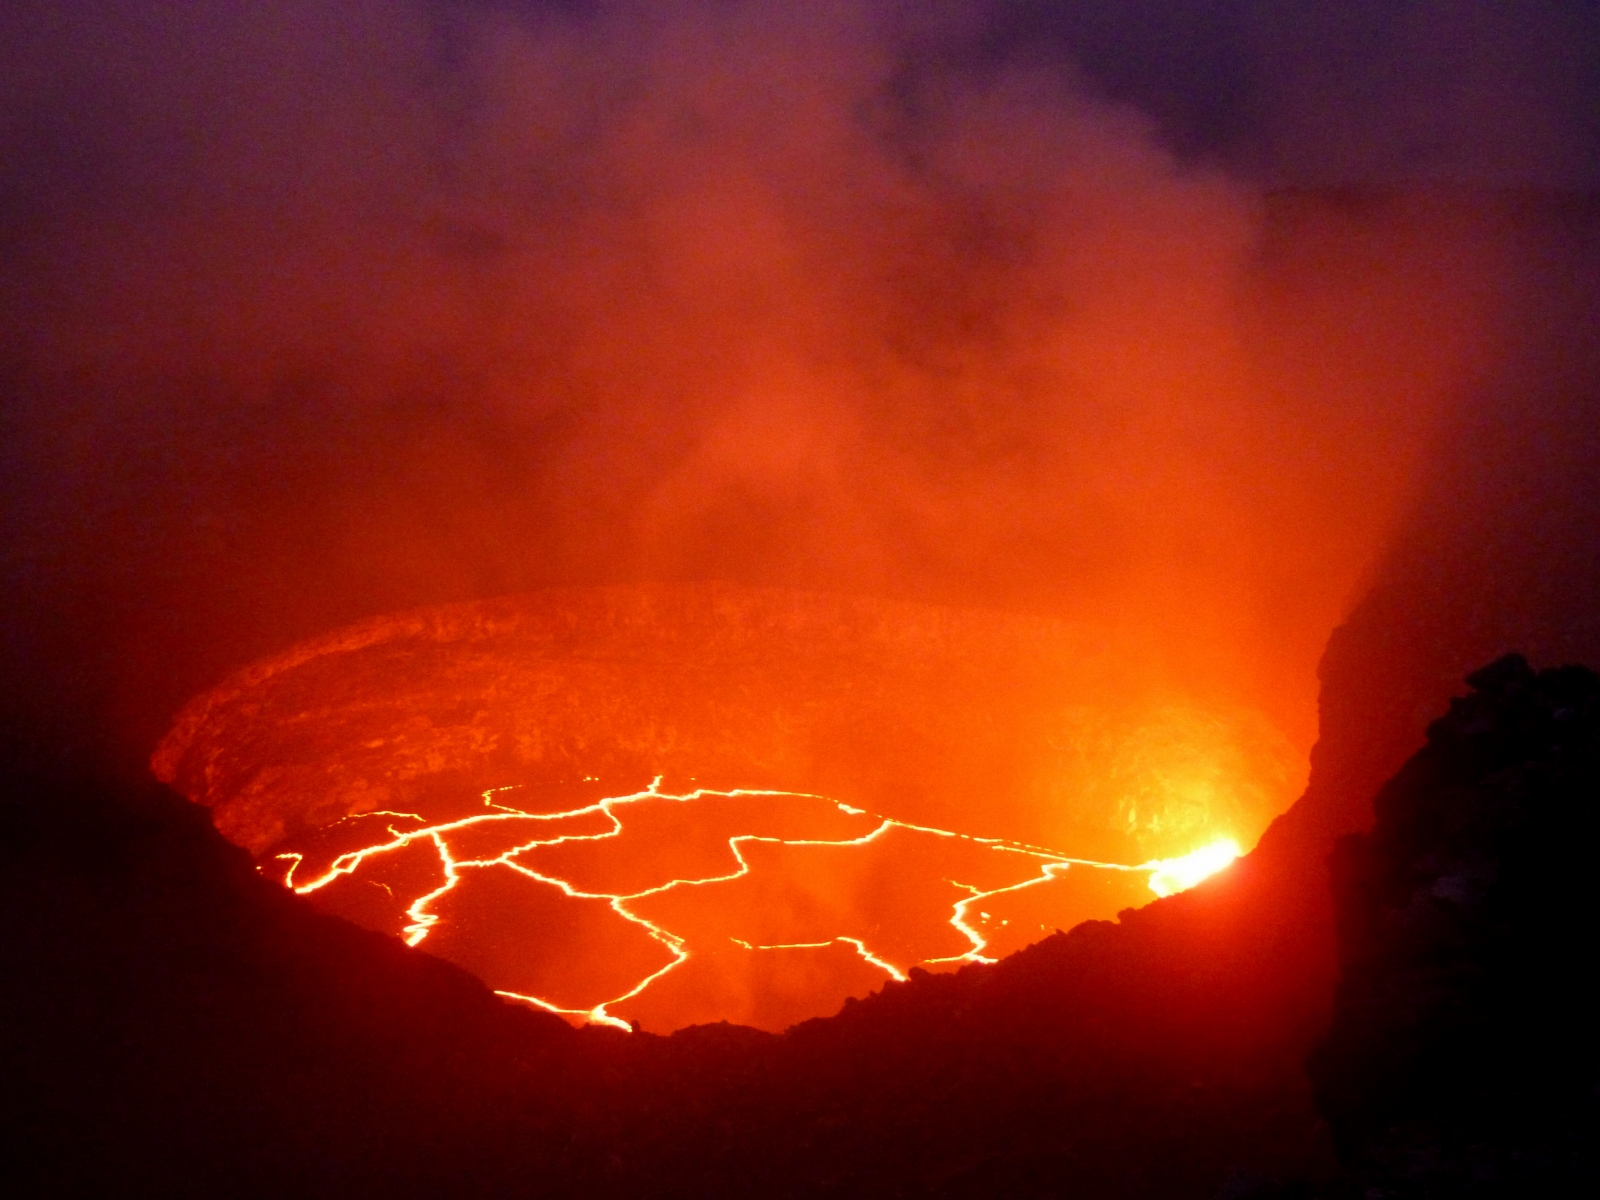 K Lauea Volcano Continues To Splutter Lava